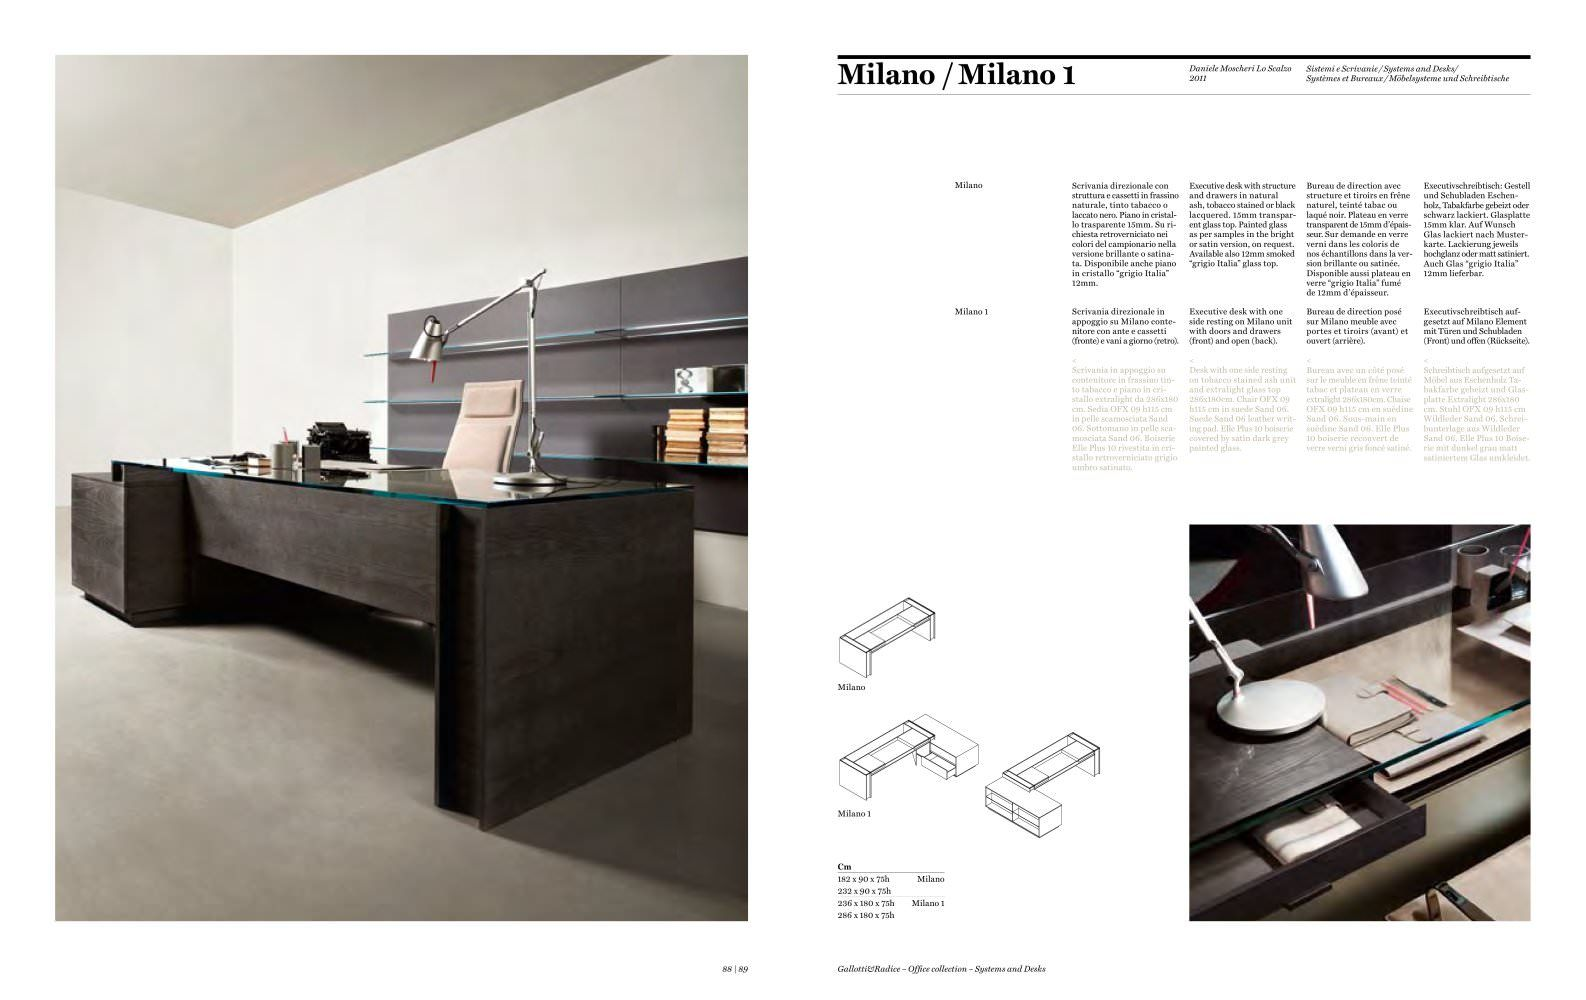 Officecollection gallotti radice milano 1 project z pinterest